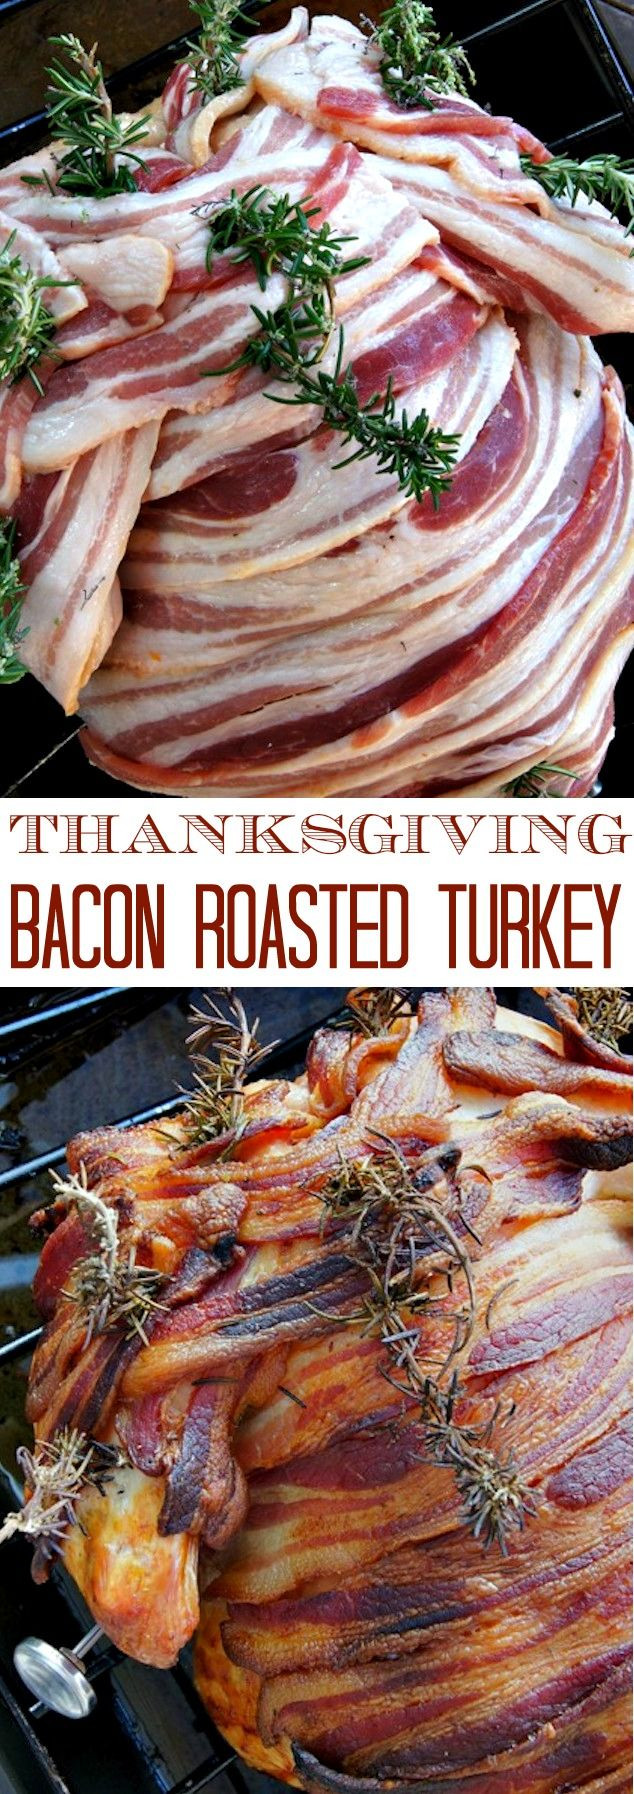 Best Roast Turkey Recipe For Thanksgiving  25 best ideas about Roasted Turkey on Pinterest